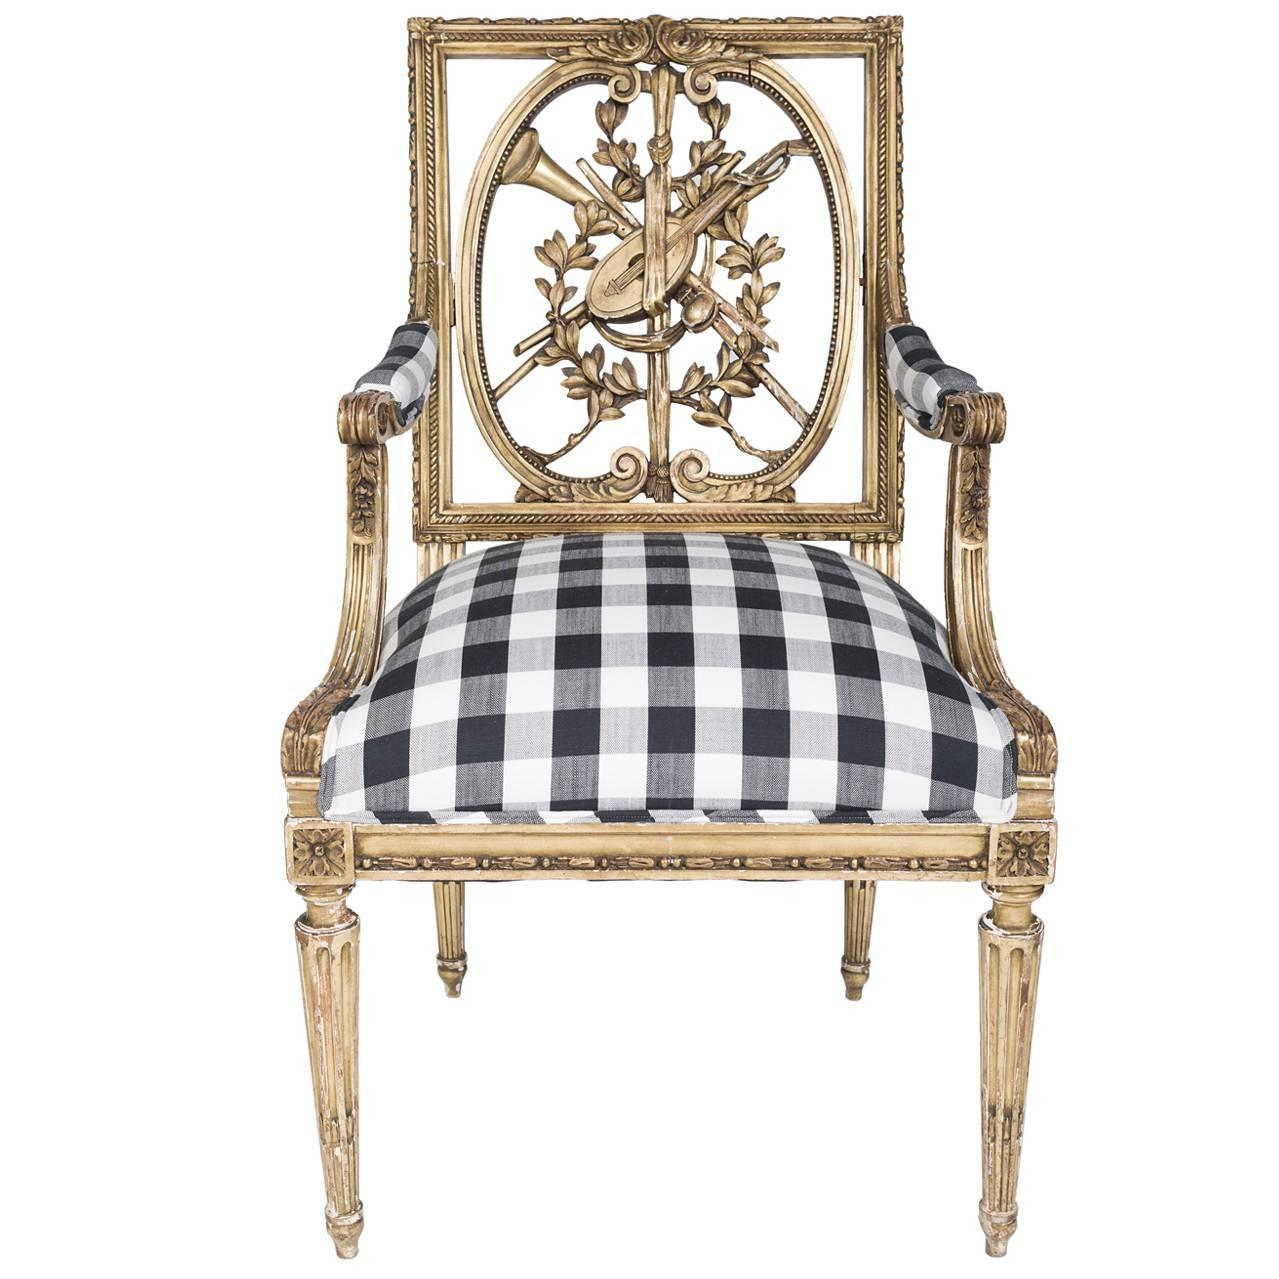 18th century louis xvi chair for sale at 1stdibs - Louis th chairs ...